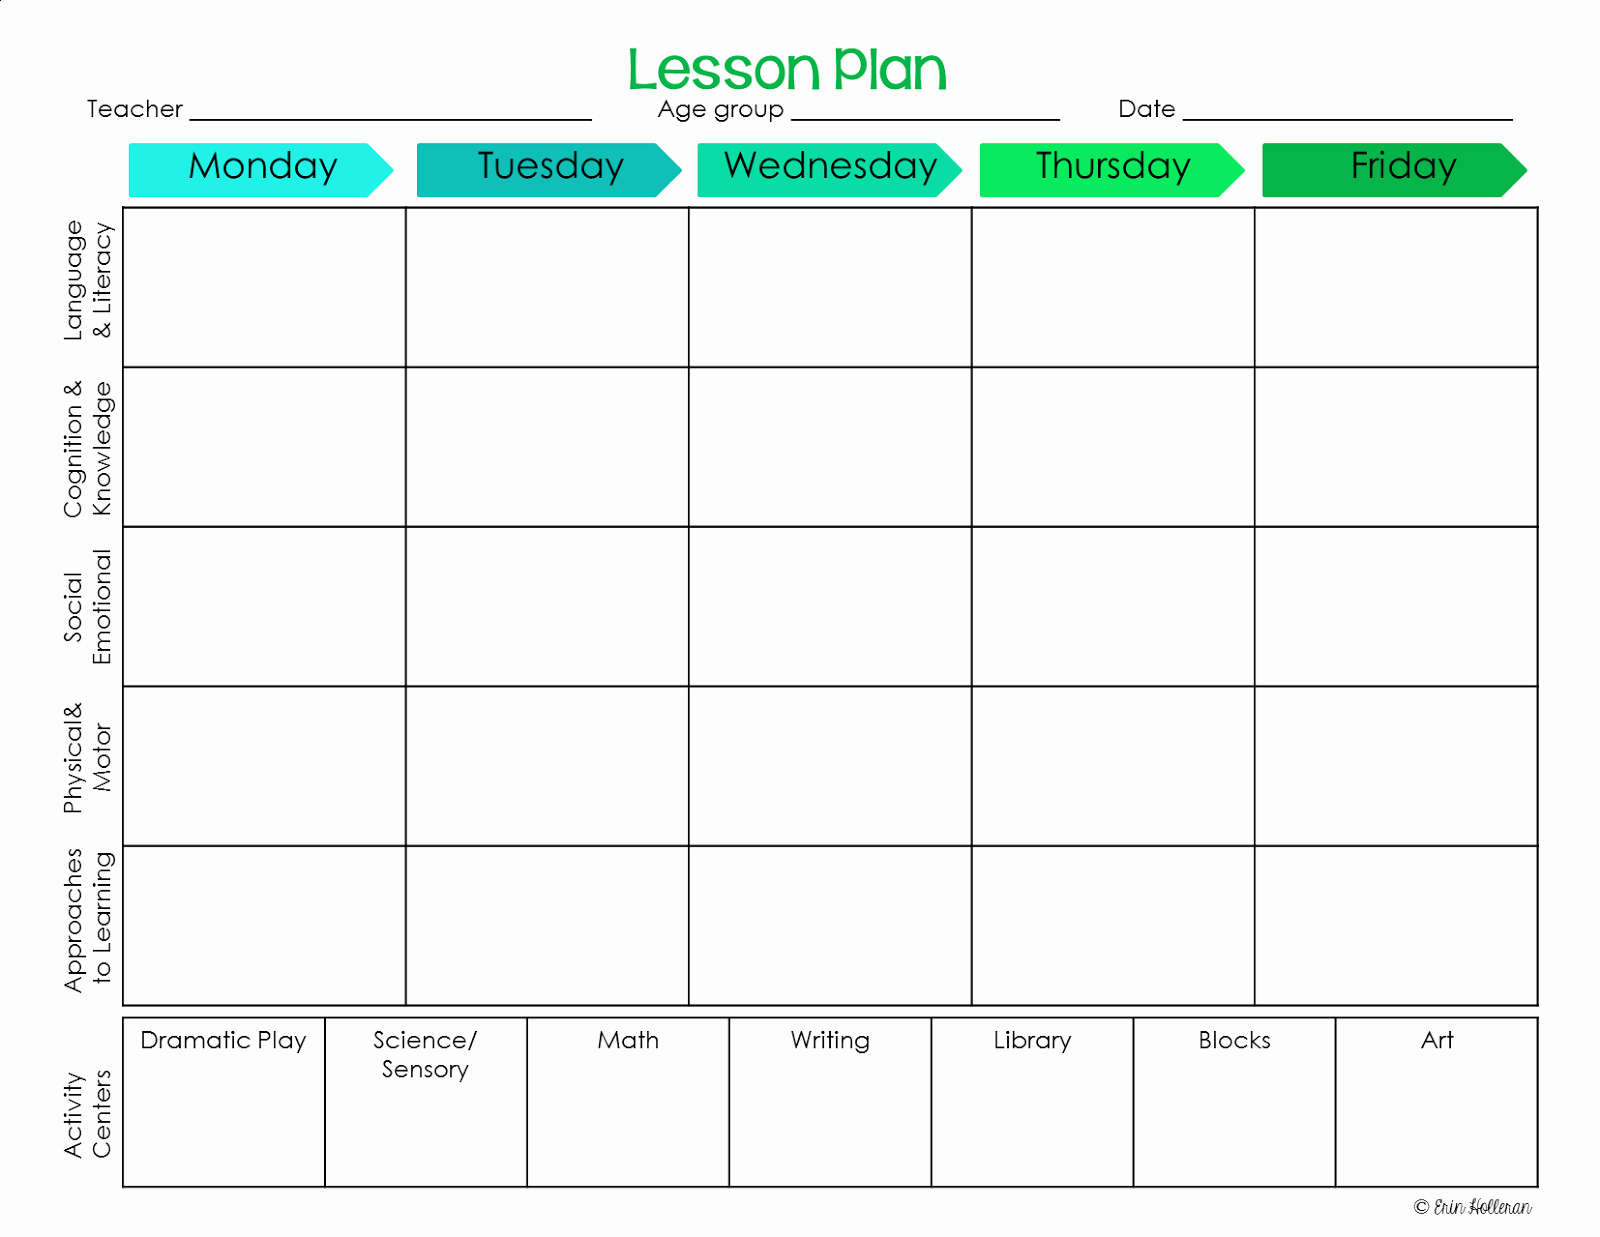 Lesson Plan Template Preschool Awesome Preschool Ponderings Make Your Lesson Plans Work for You